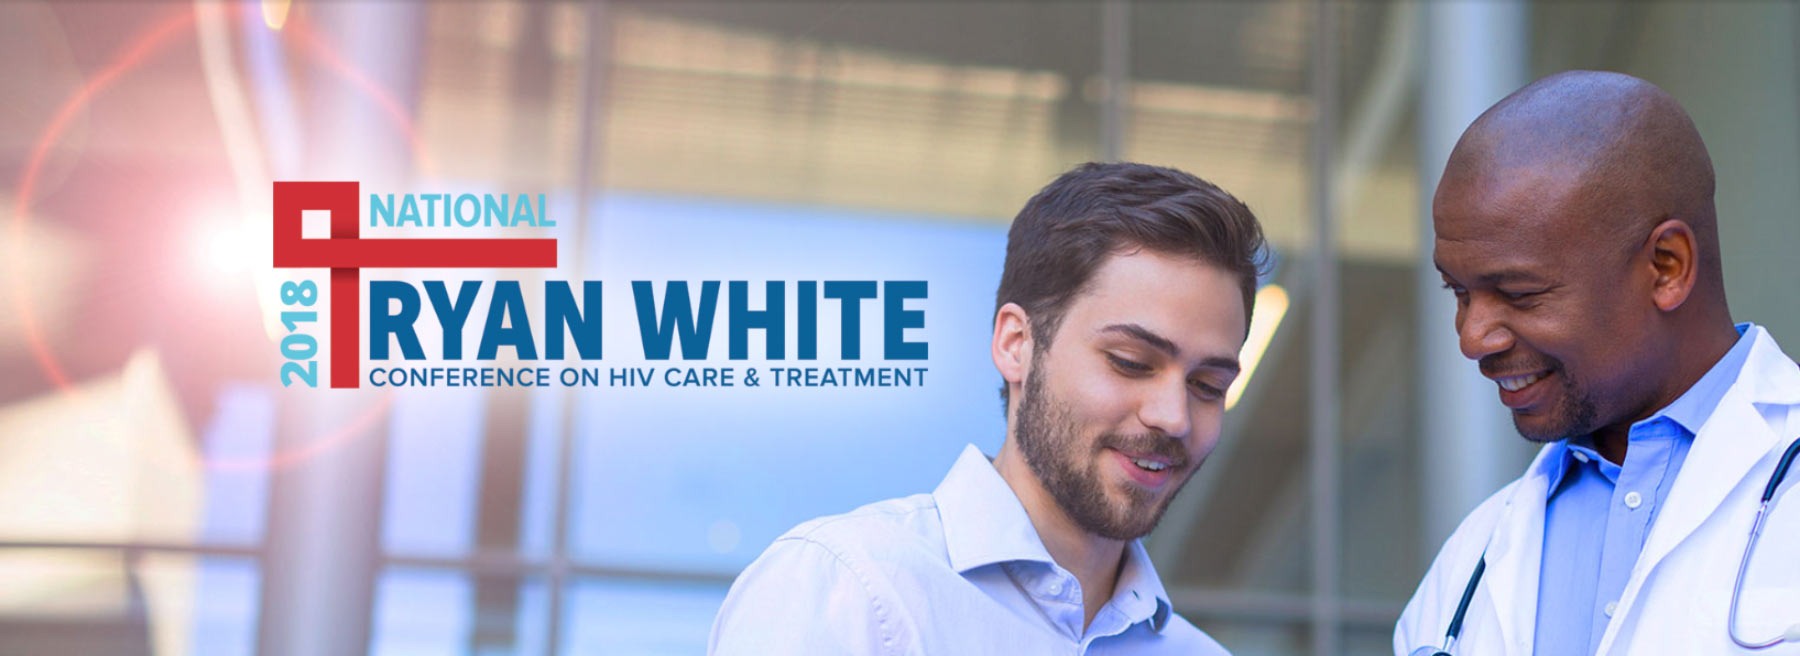 2018 Ryan White Conference on HIV Care and Treatment